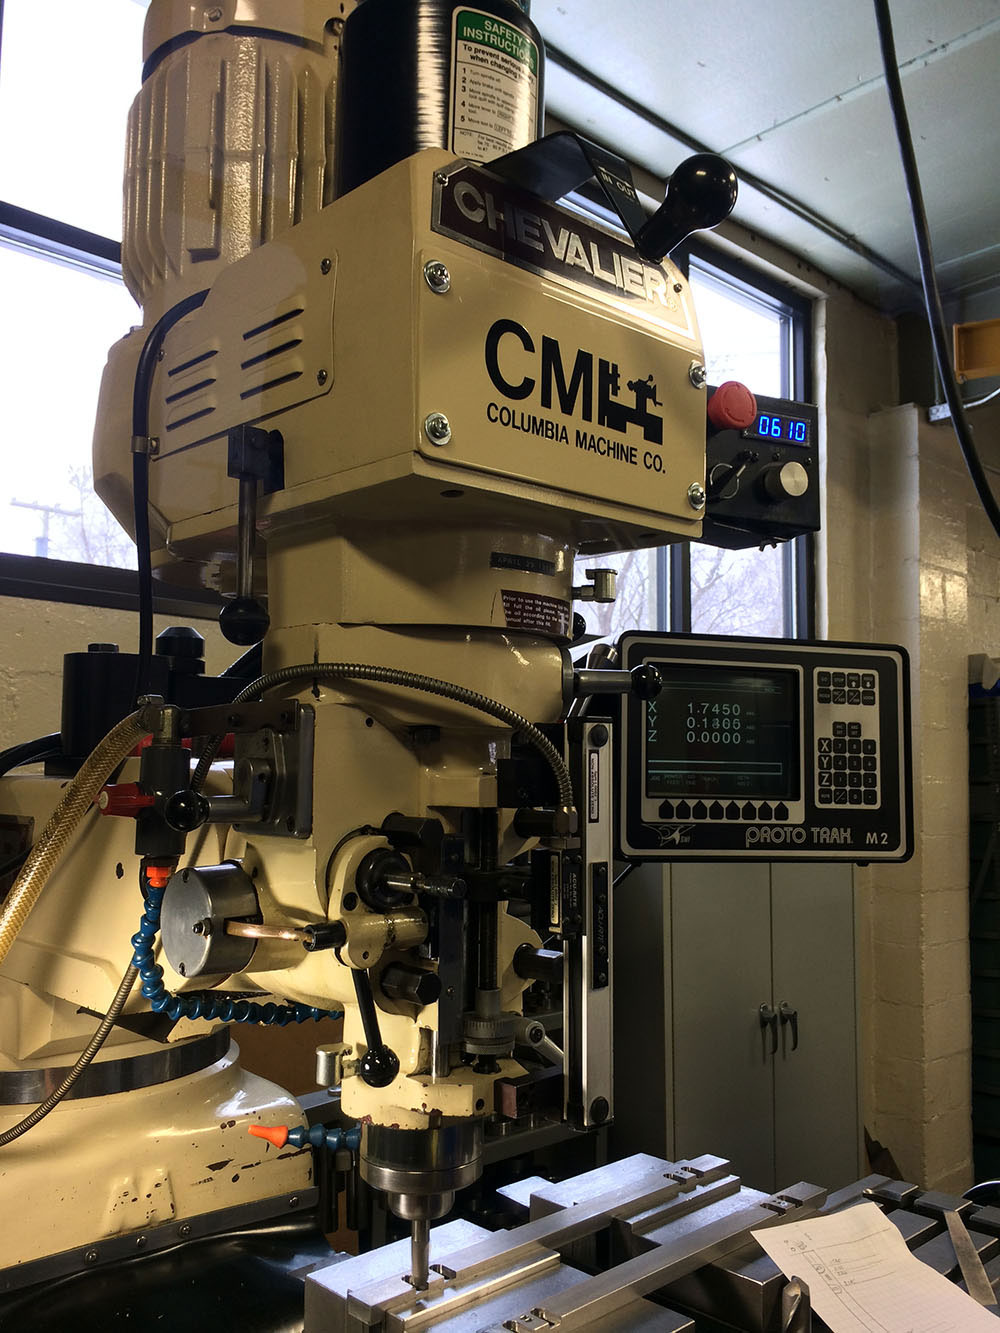 Chevalier Vertical Milling Machine Equipped with Proto Trak M2 2 Axis CNC Control, Servo Variable Speed Frequency Drive, & a Kurt Power draw bar